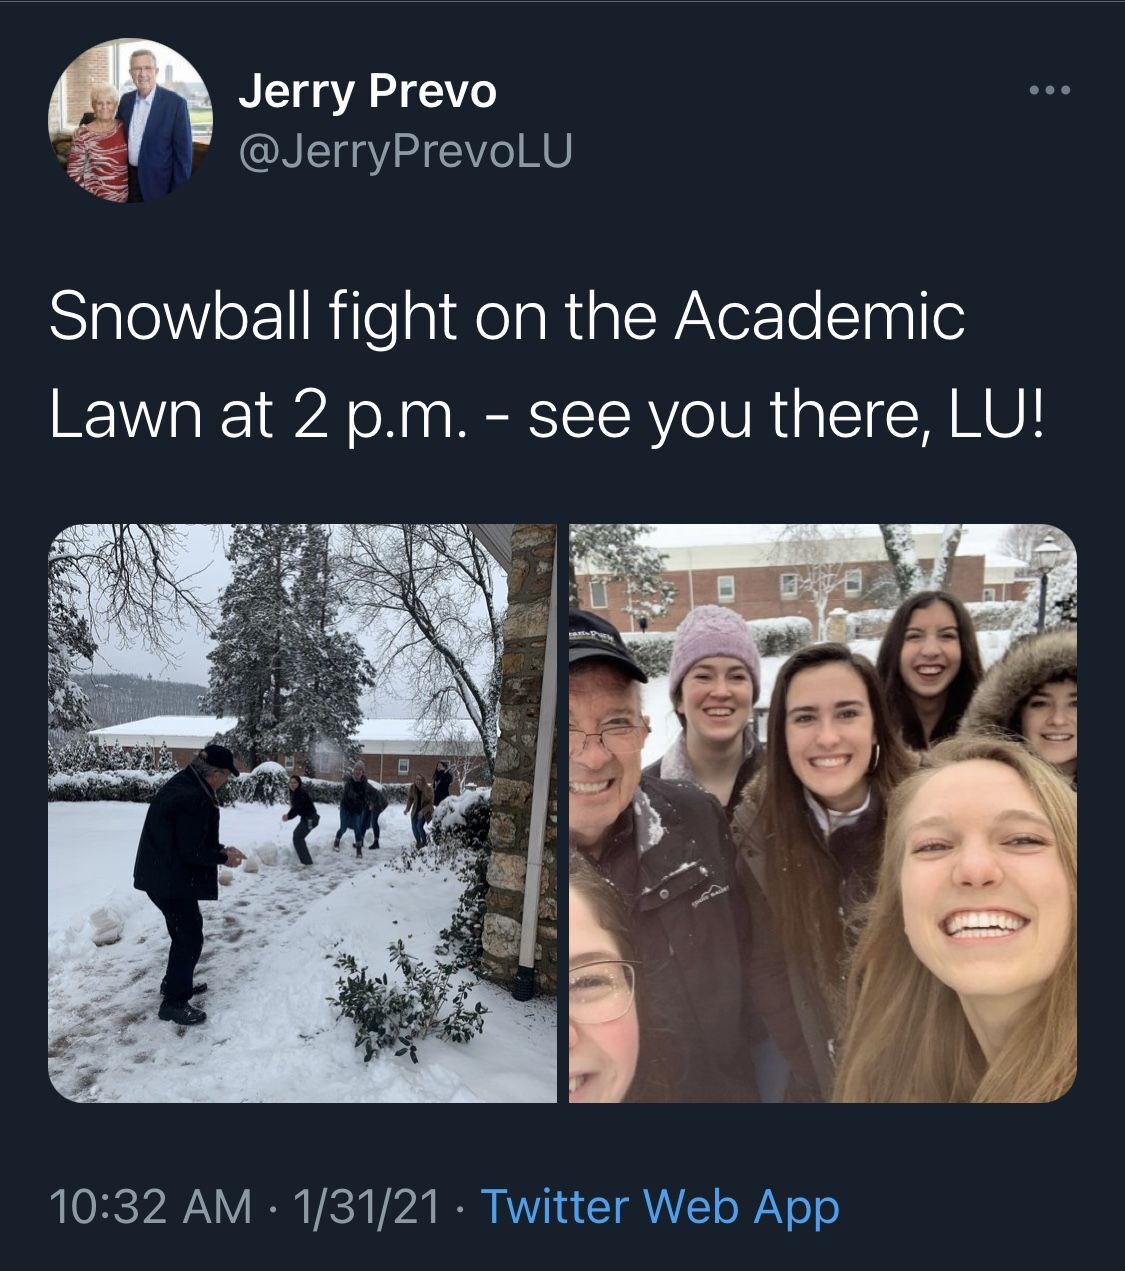 Liberty University Acting President Apologizes for Campus Snowball Fight That Didn't Follow Coronavirus Guidelines